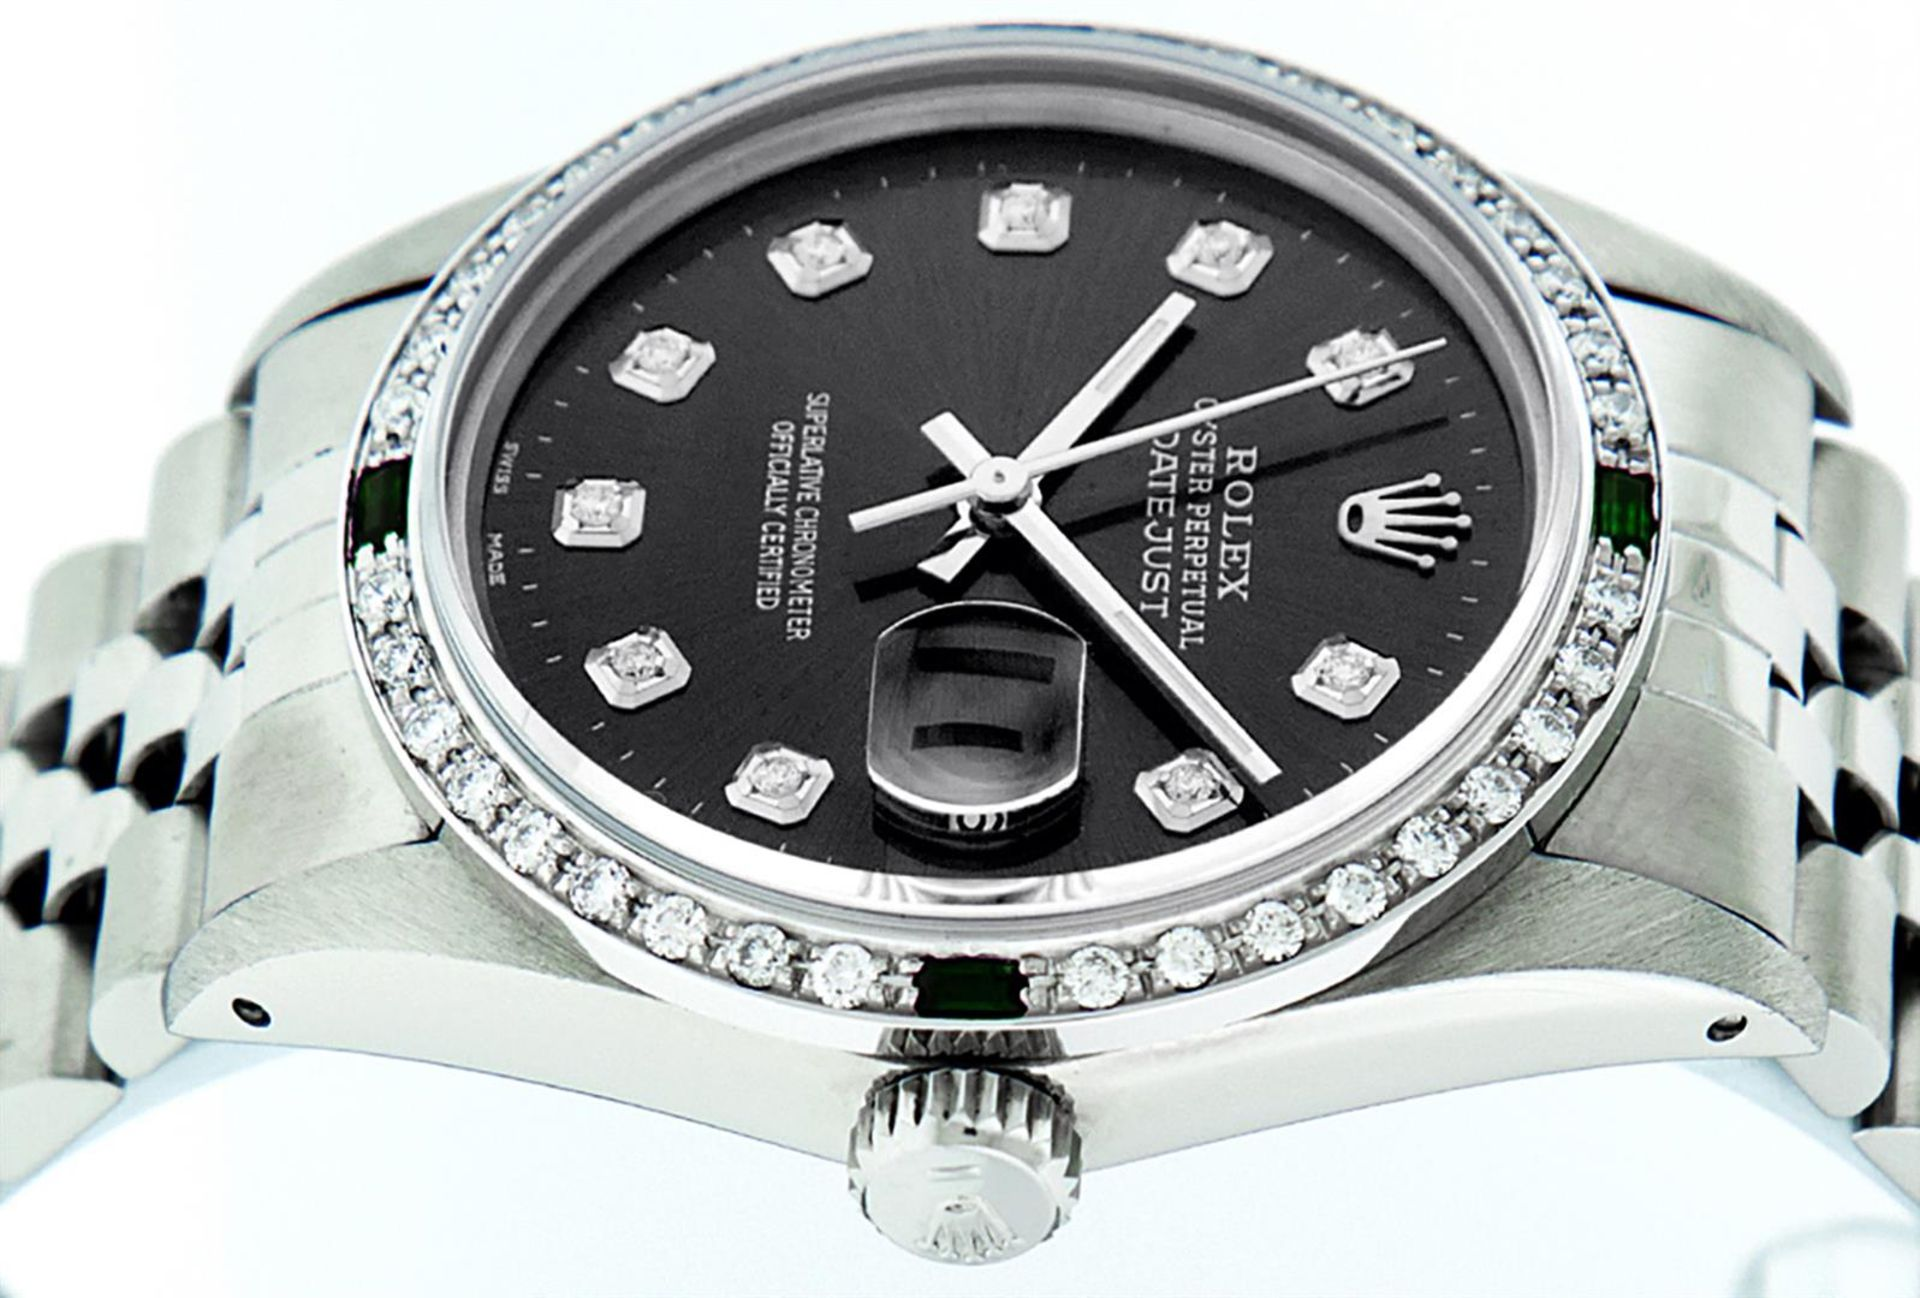 Rolex Mens Stainless Steel Black Diamond & Emerald Oyster Perpetual Datejust Wri - Image 4 of 9